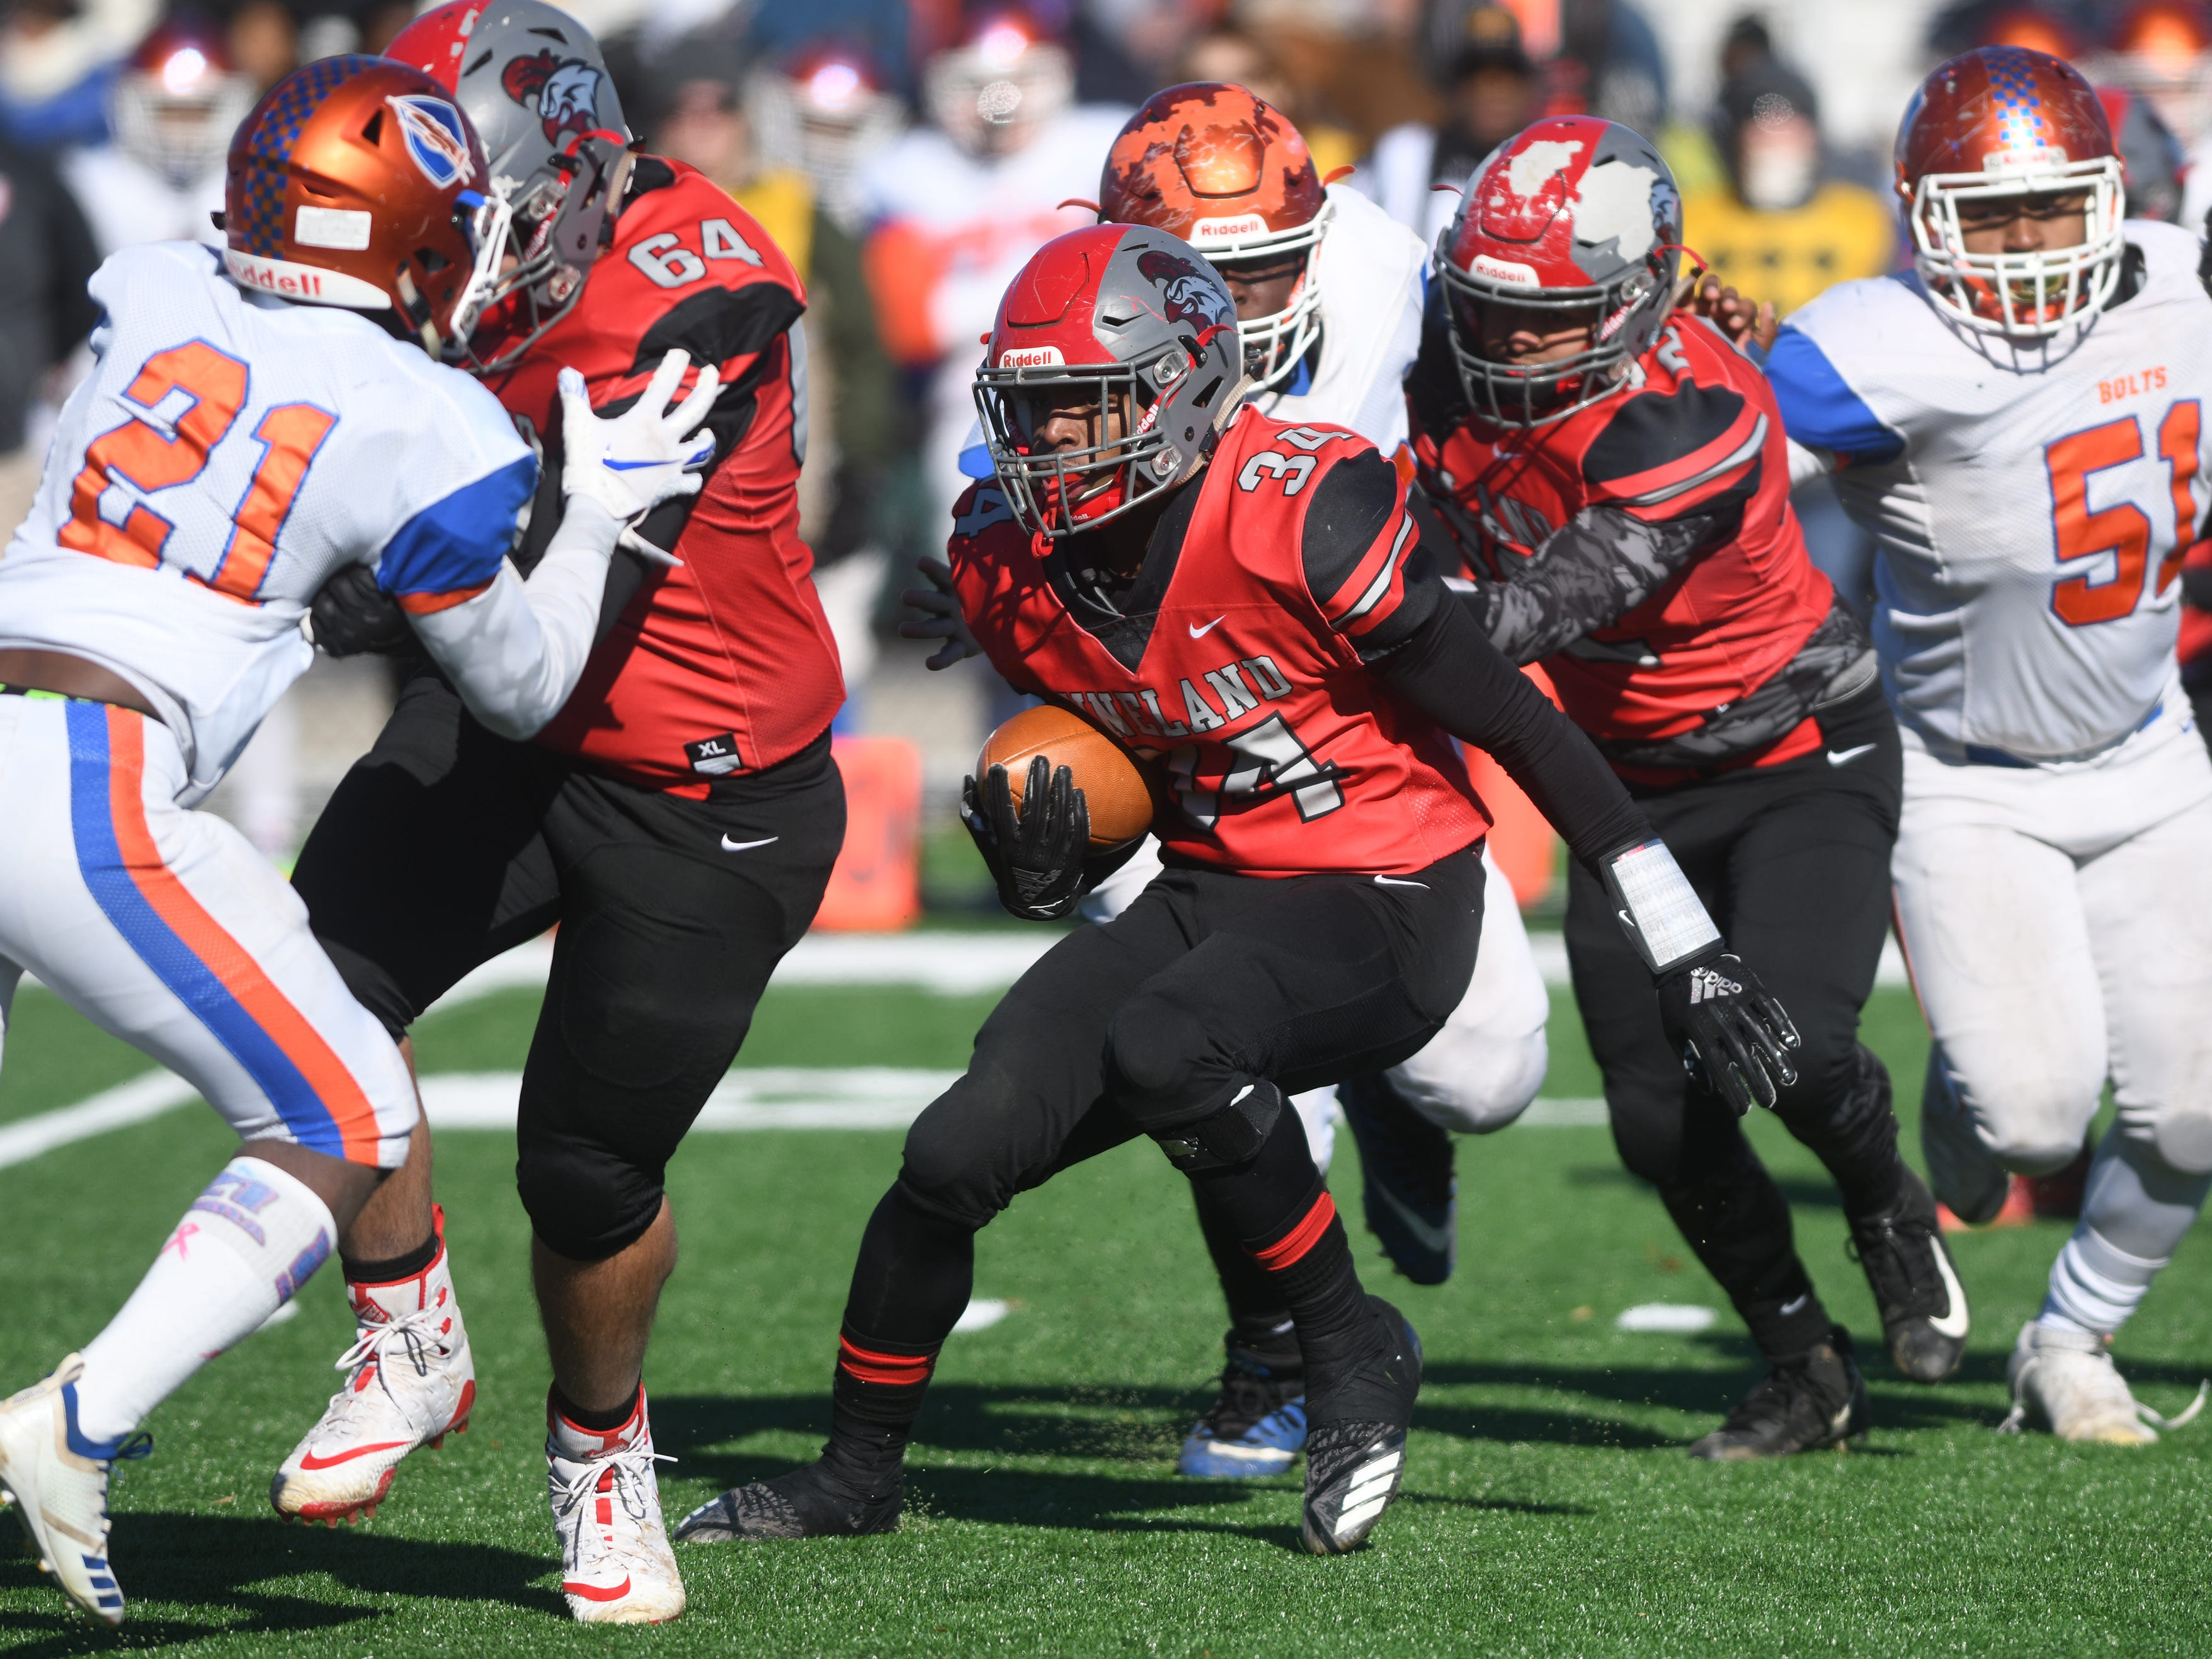 Vineland's Nahzir Broome runs for a gain against visiting Millville on Thanksgiving Day. The Fighting Clan topped the Thunderbolts, 26-6.